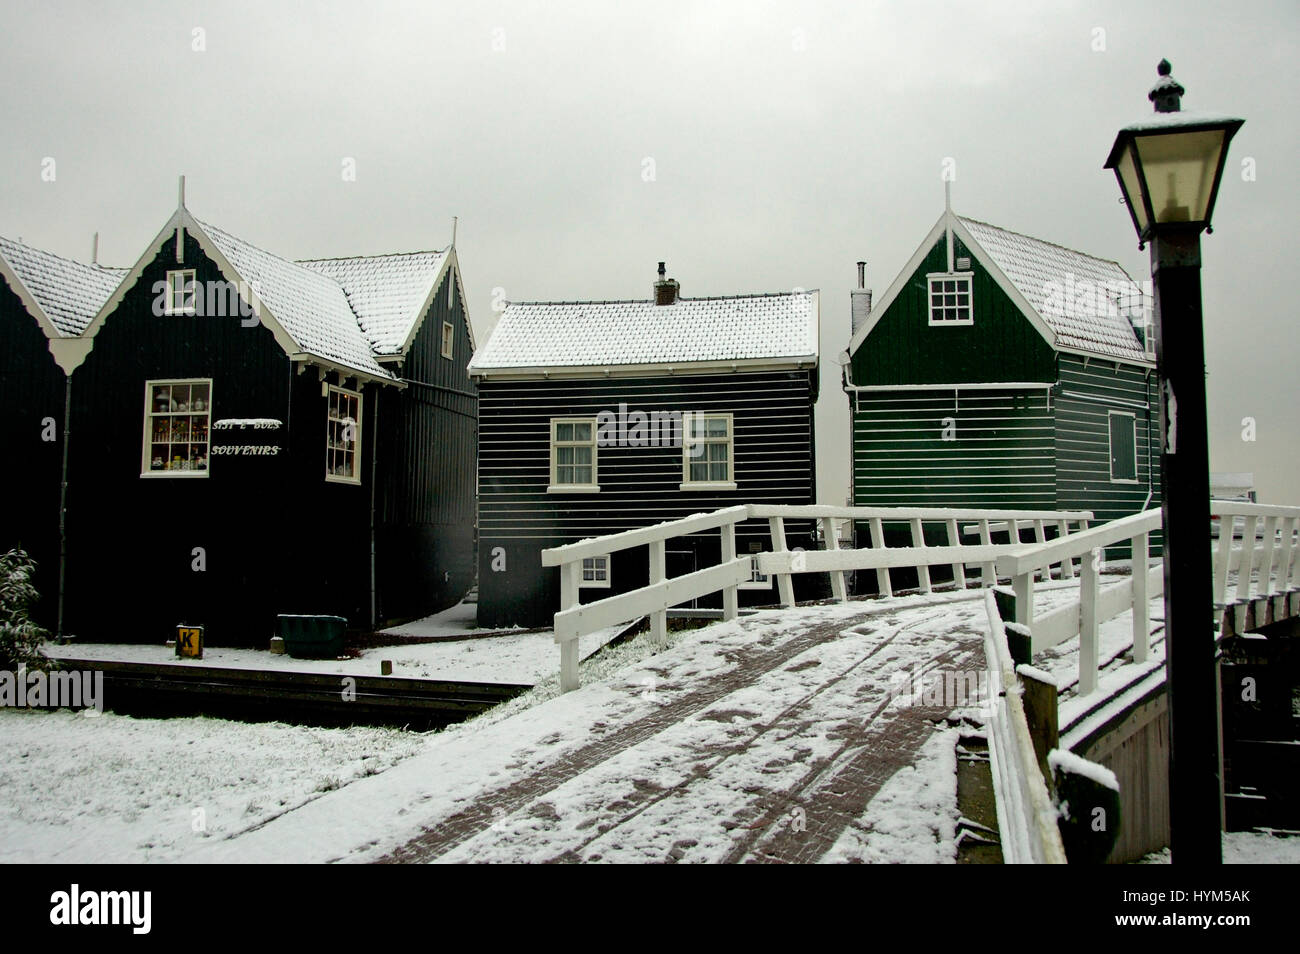 The traditional dutch village Marken in the Netherlands Stock Photo